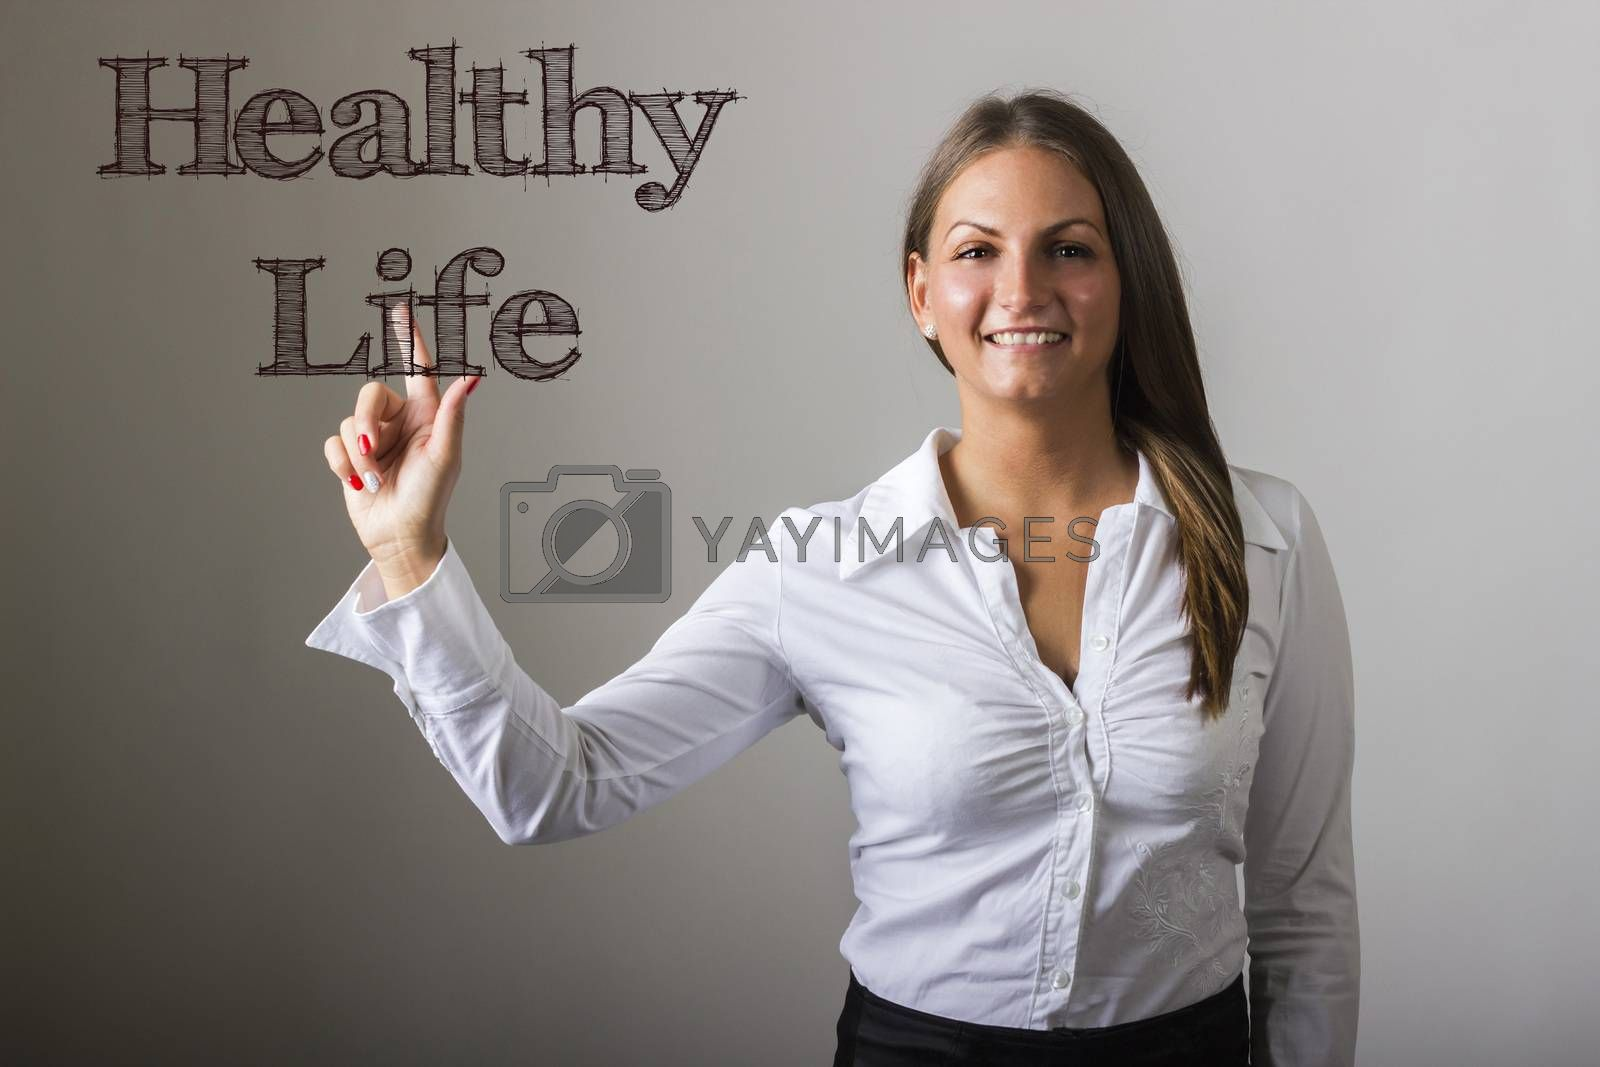 Healthy Life - Beautiful girl touching text on transparent surface - horizontal image